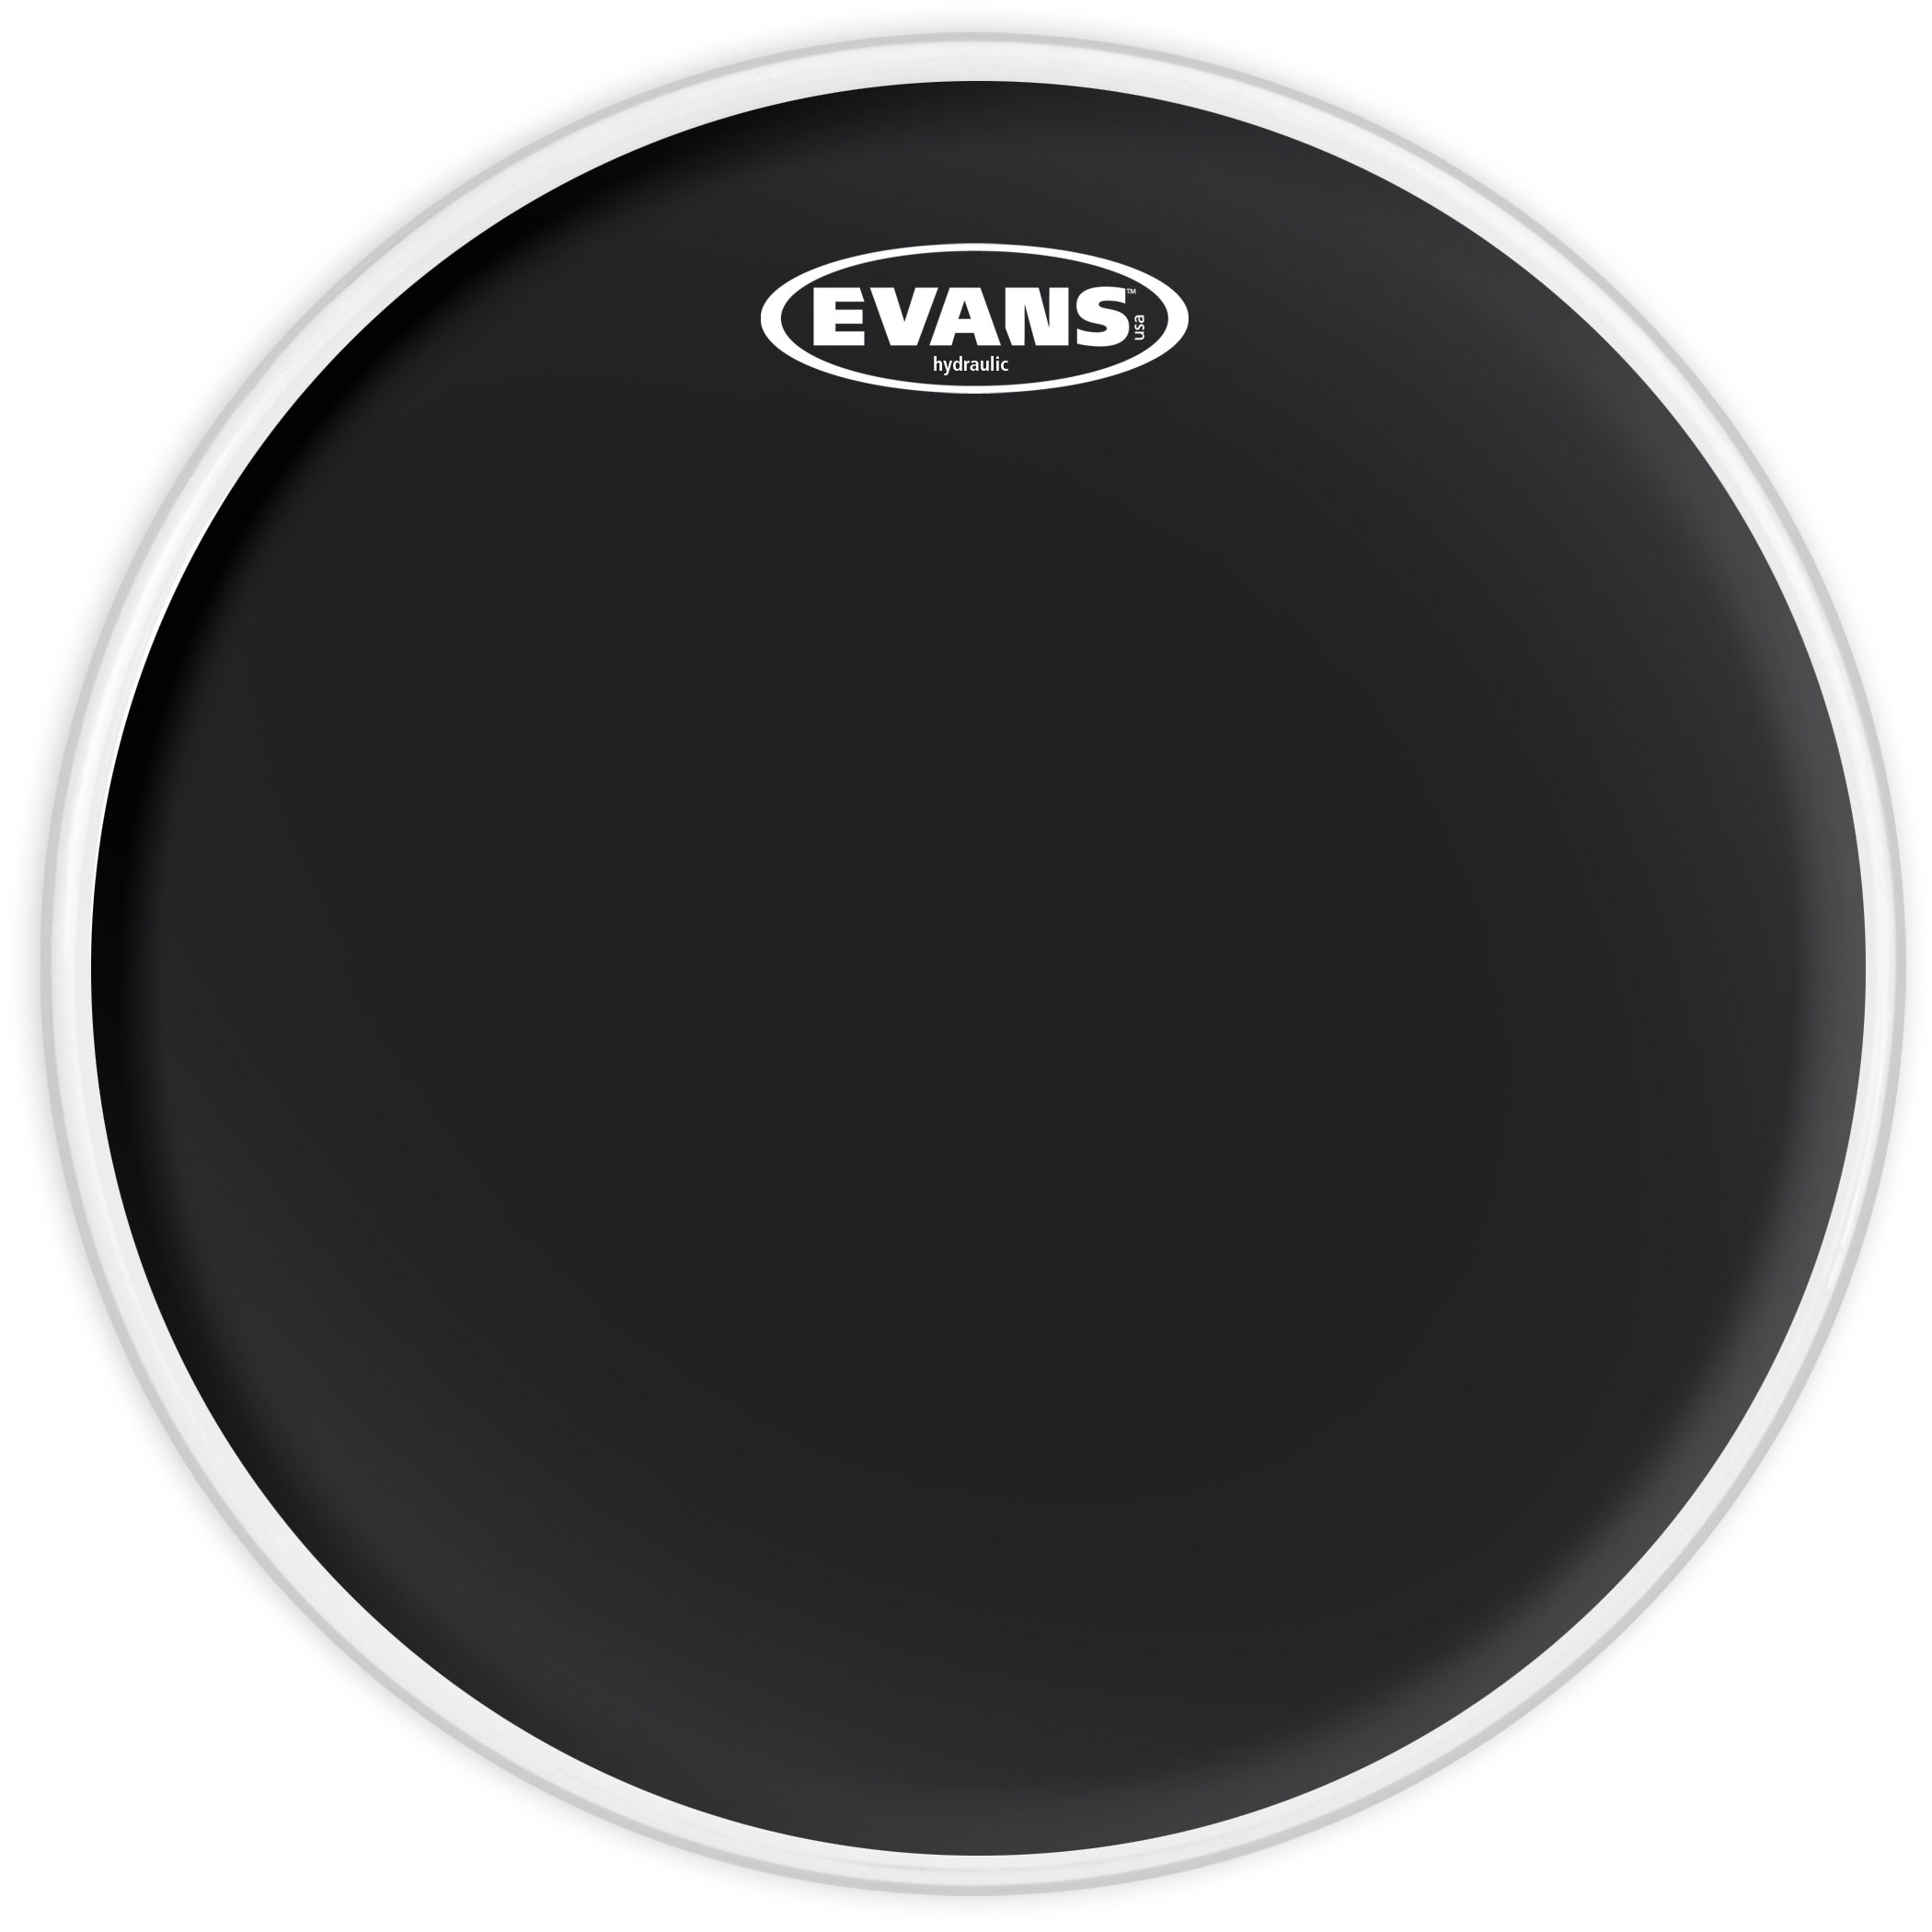 "Evans 13"" Hydraulic Black Head"